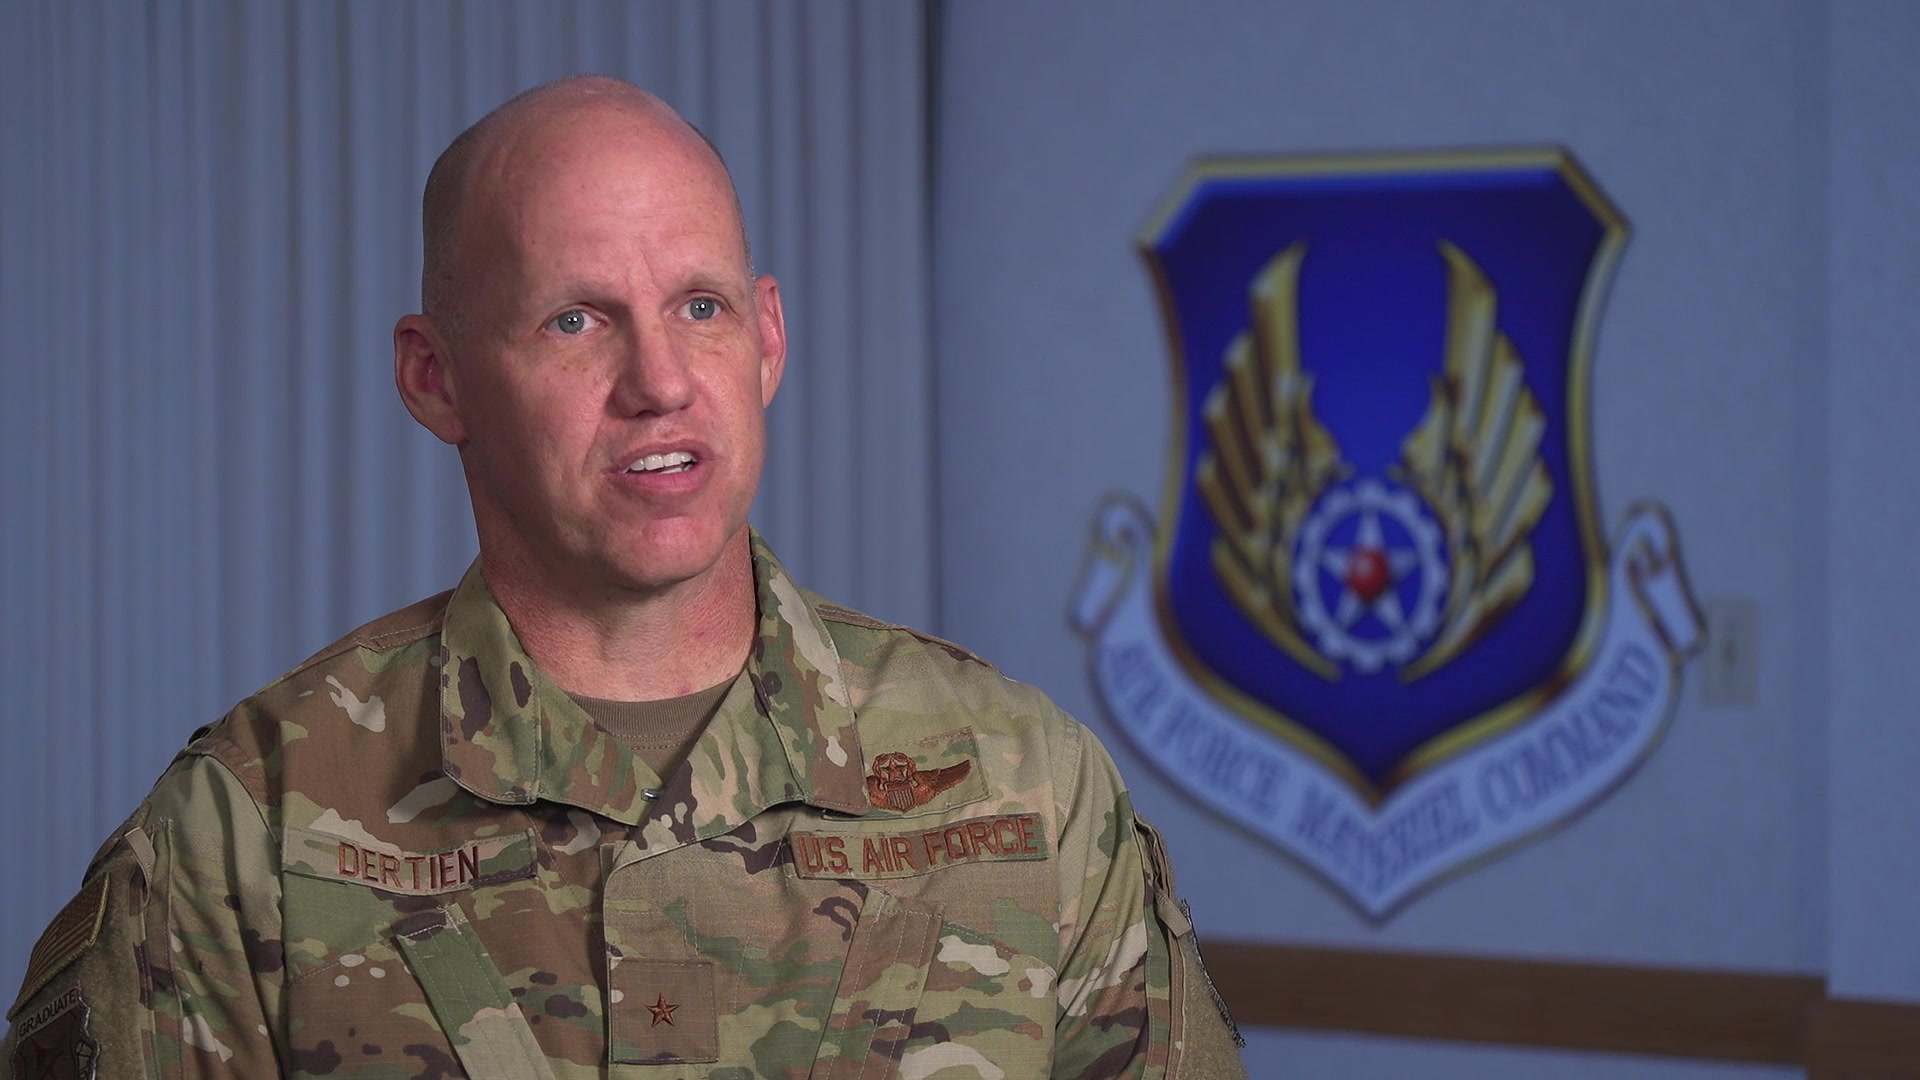 Brig. Gen. Evan C. Dertien, Director of Air, Space and Cyberspace Operations, Headquarters Air Force Materiel Command, shares his perspective on the importance of mentorship, Wright-Patterson AFB, Ohio, Nov. 18, 2019. The Air Force Materiel Command Mentorship Program uses first-person stories to share perspectives, relate experiences, and work through the challenges of mentoring. (U.S. Air Force video by 88th Air Base Wing Public Affairs